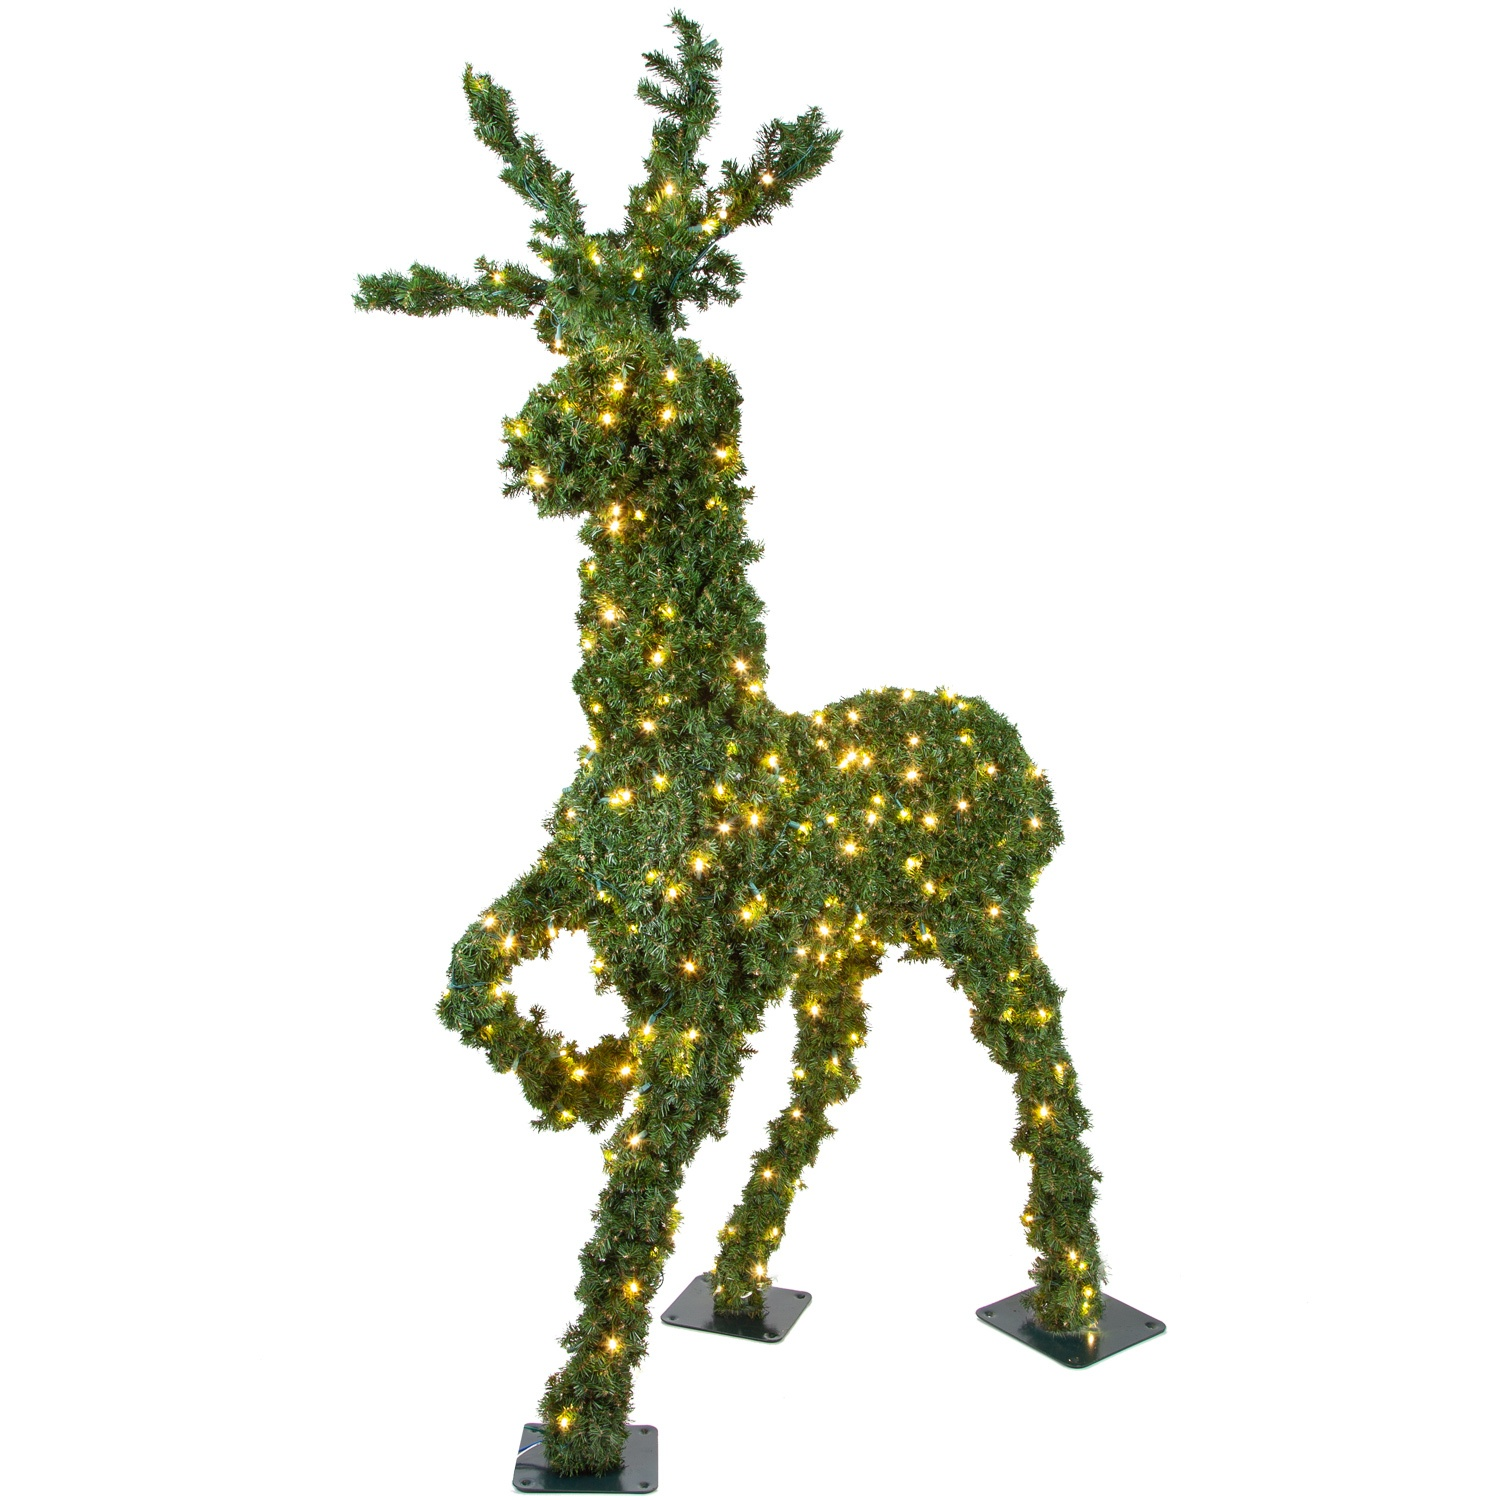 Outdoor Christmas Decorations 4 8 Standing Reindeer Topiary Led Outdoor Yard Decoration